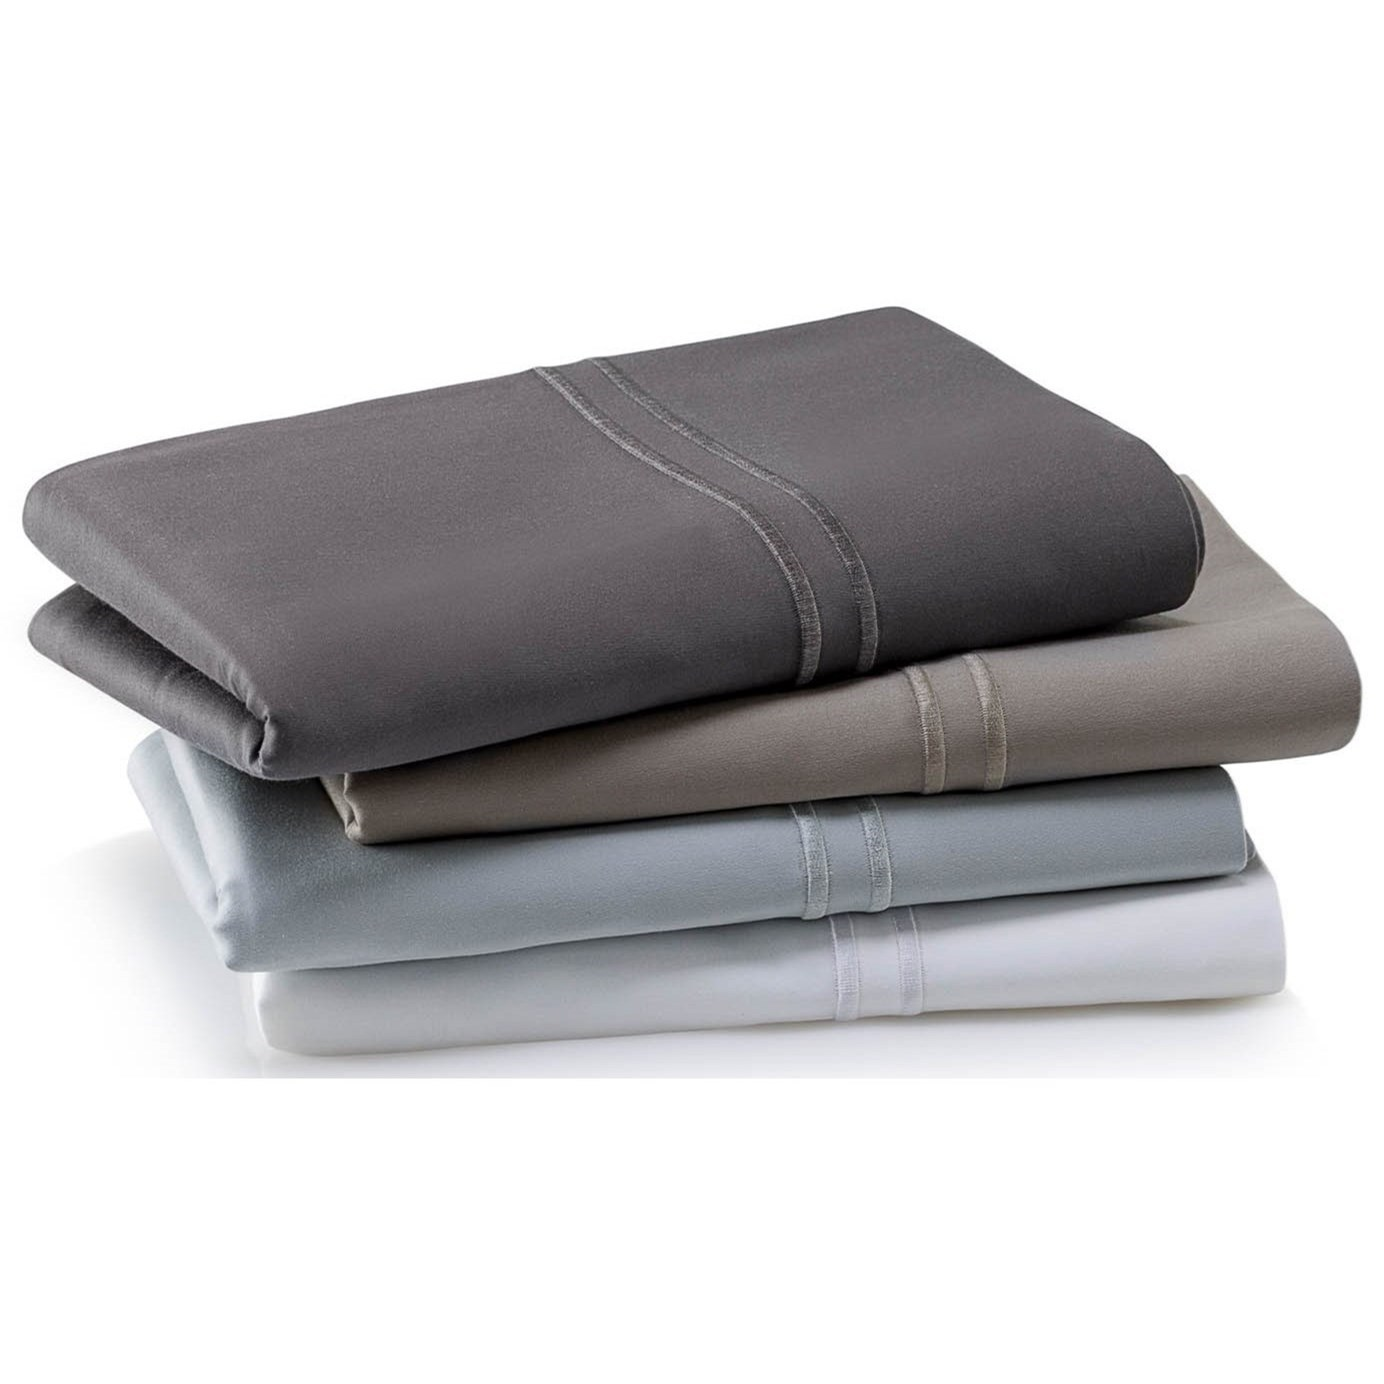 Malouf Supima Cotton SmokeQueen Sheet Set ...